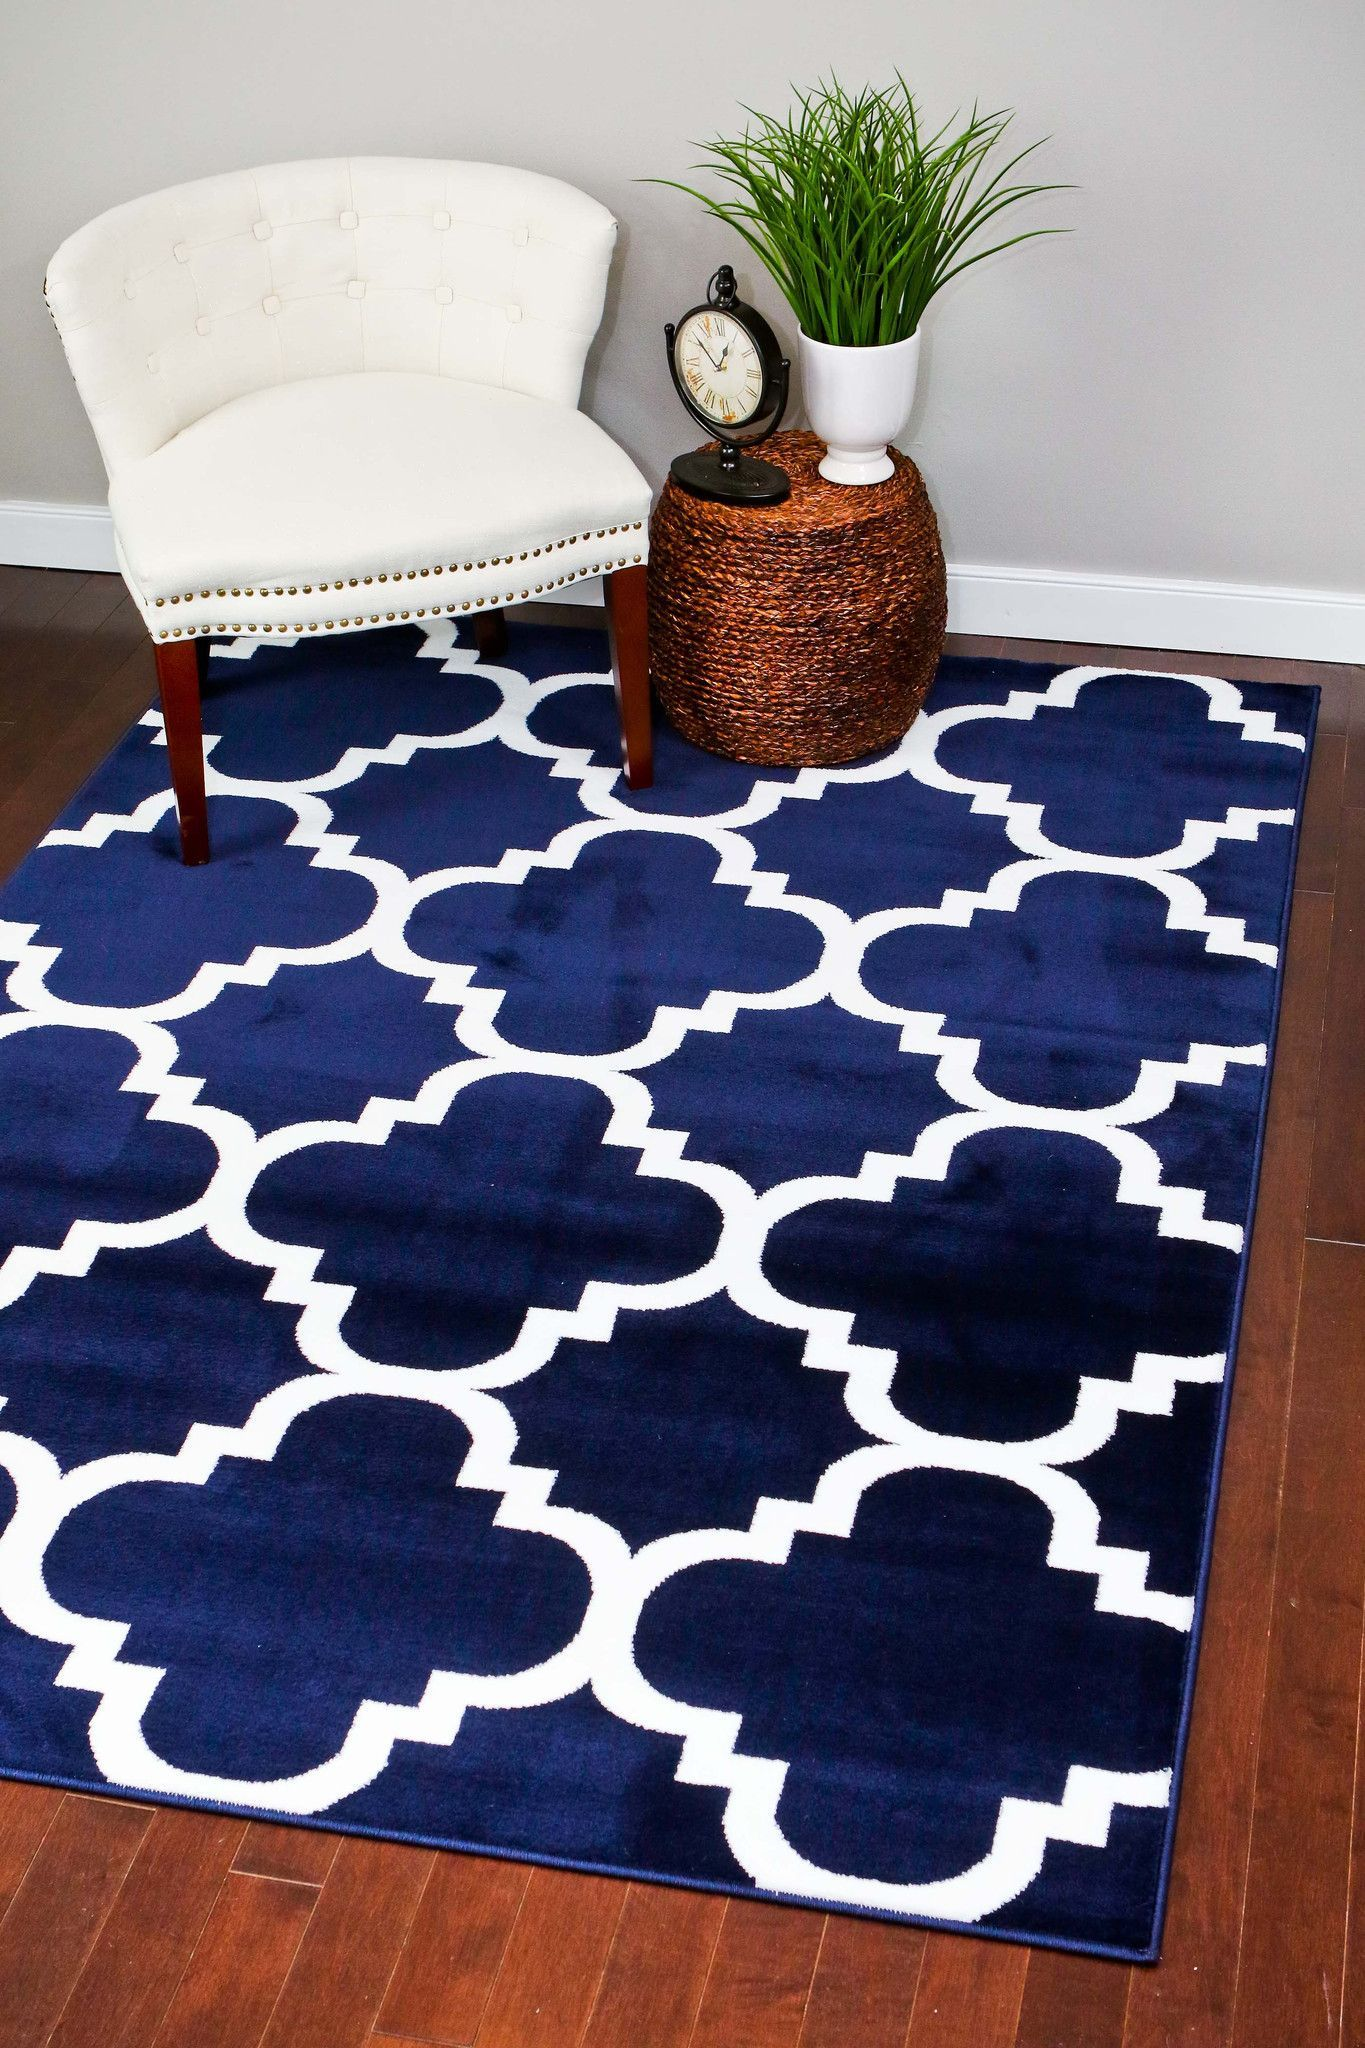 p x blue rugs rug navy ft ruggable area outdoor solid resistant washable stain